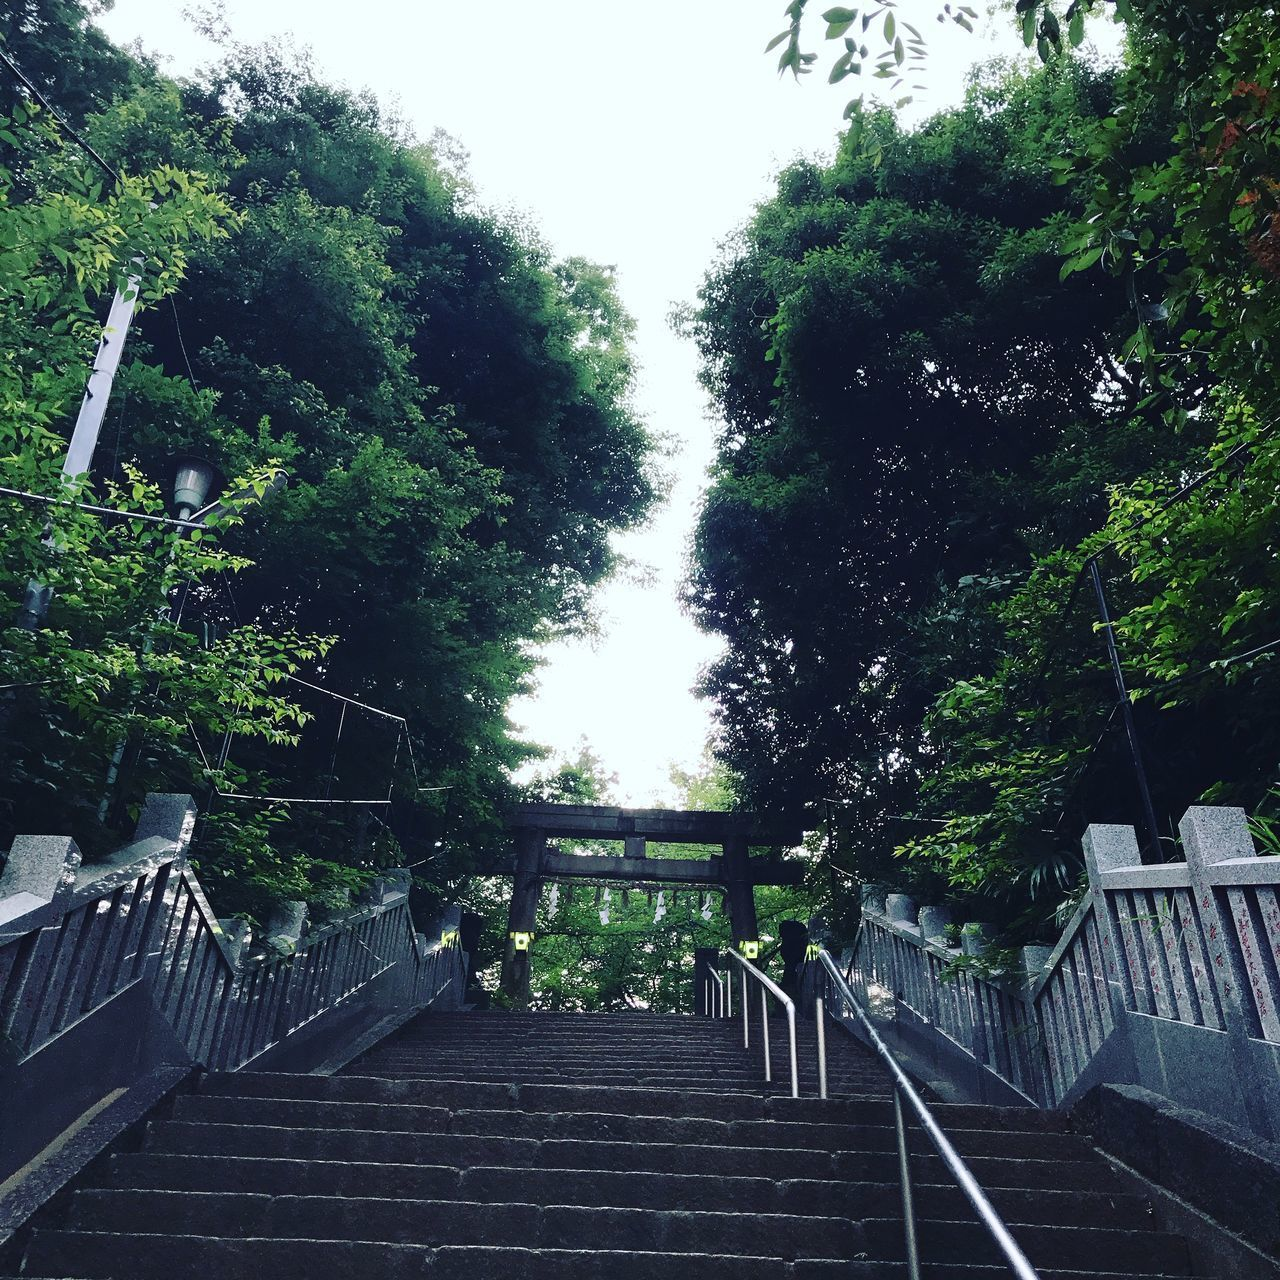 LOW ANGLE VIEW OF STEPS AMIDST TREES AND PLANTS